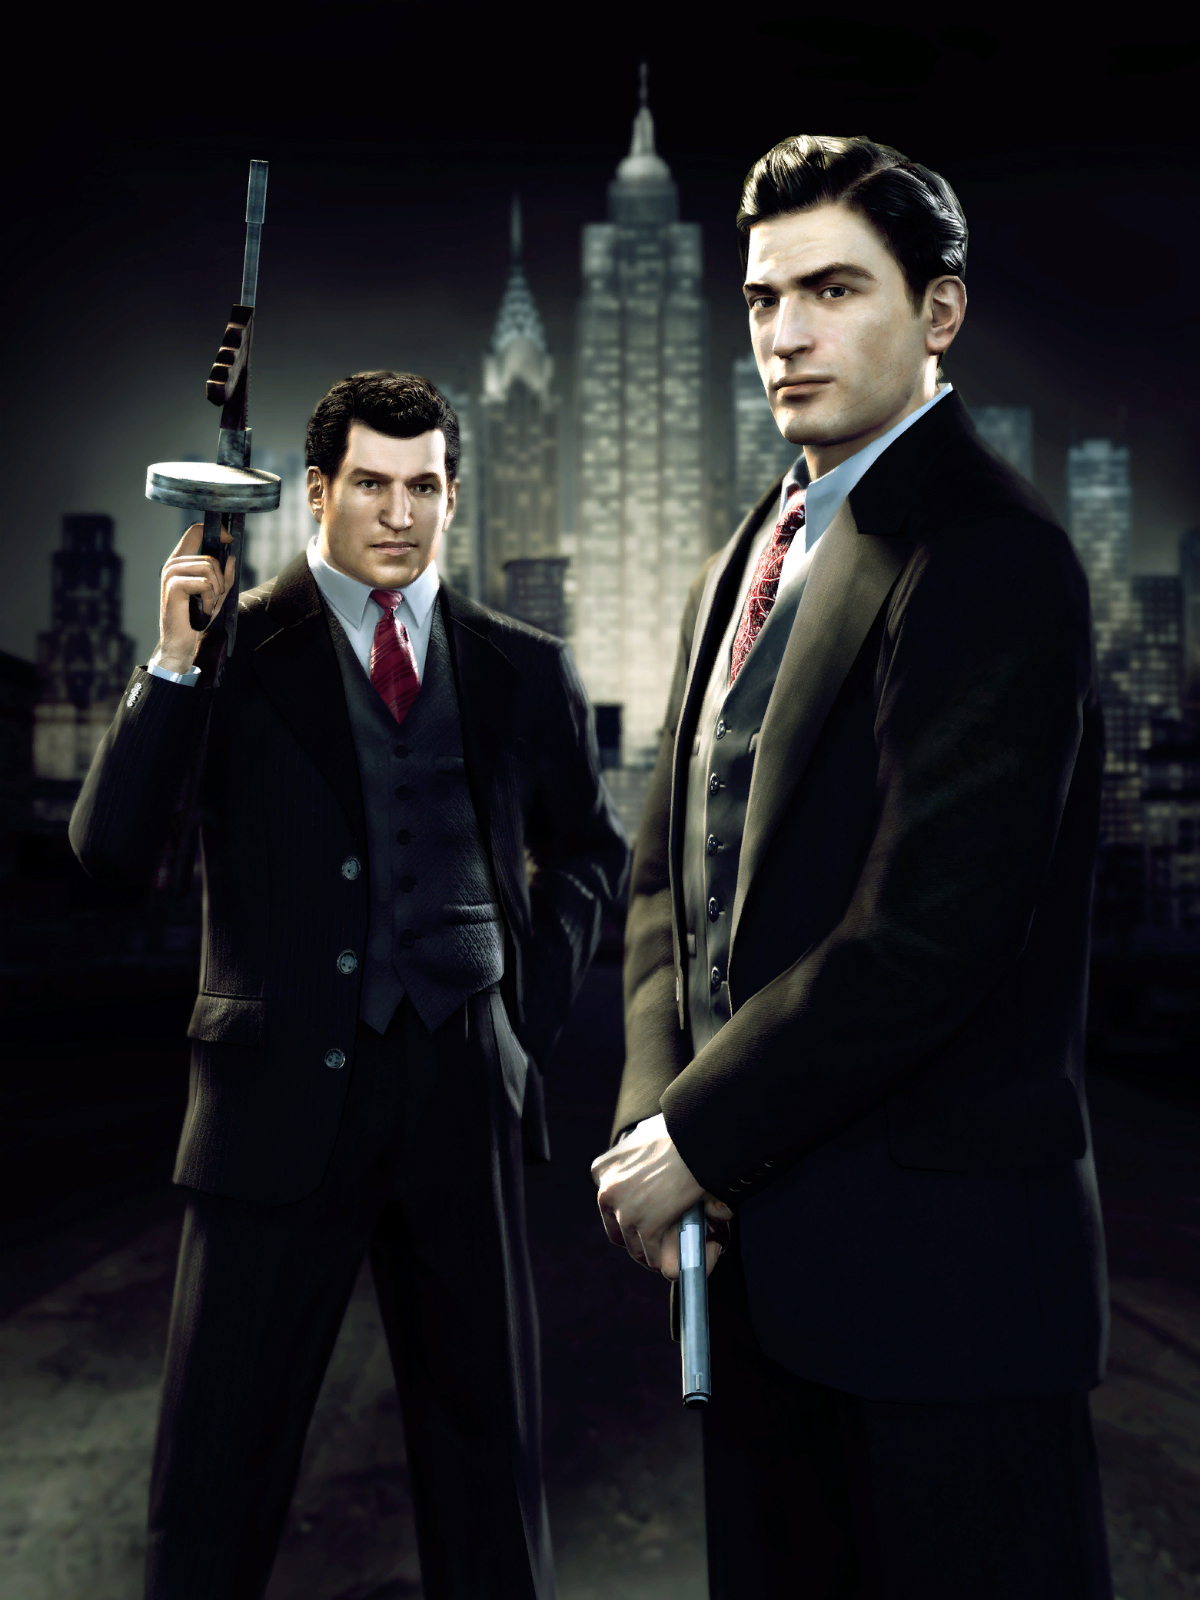 Central Wallpaper: Mafia II HD Game Wallpapers